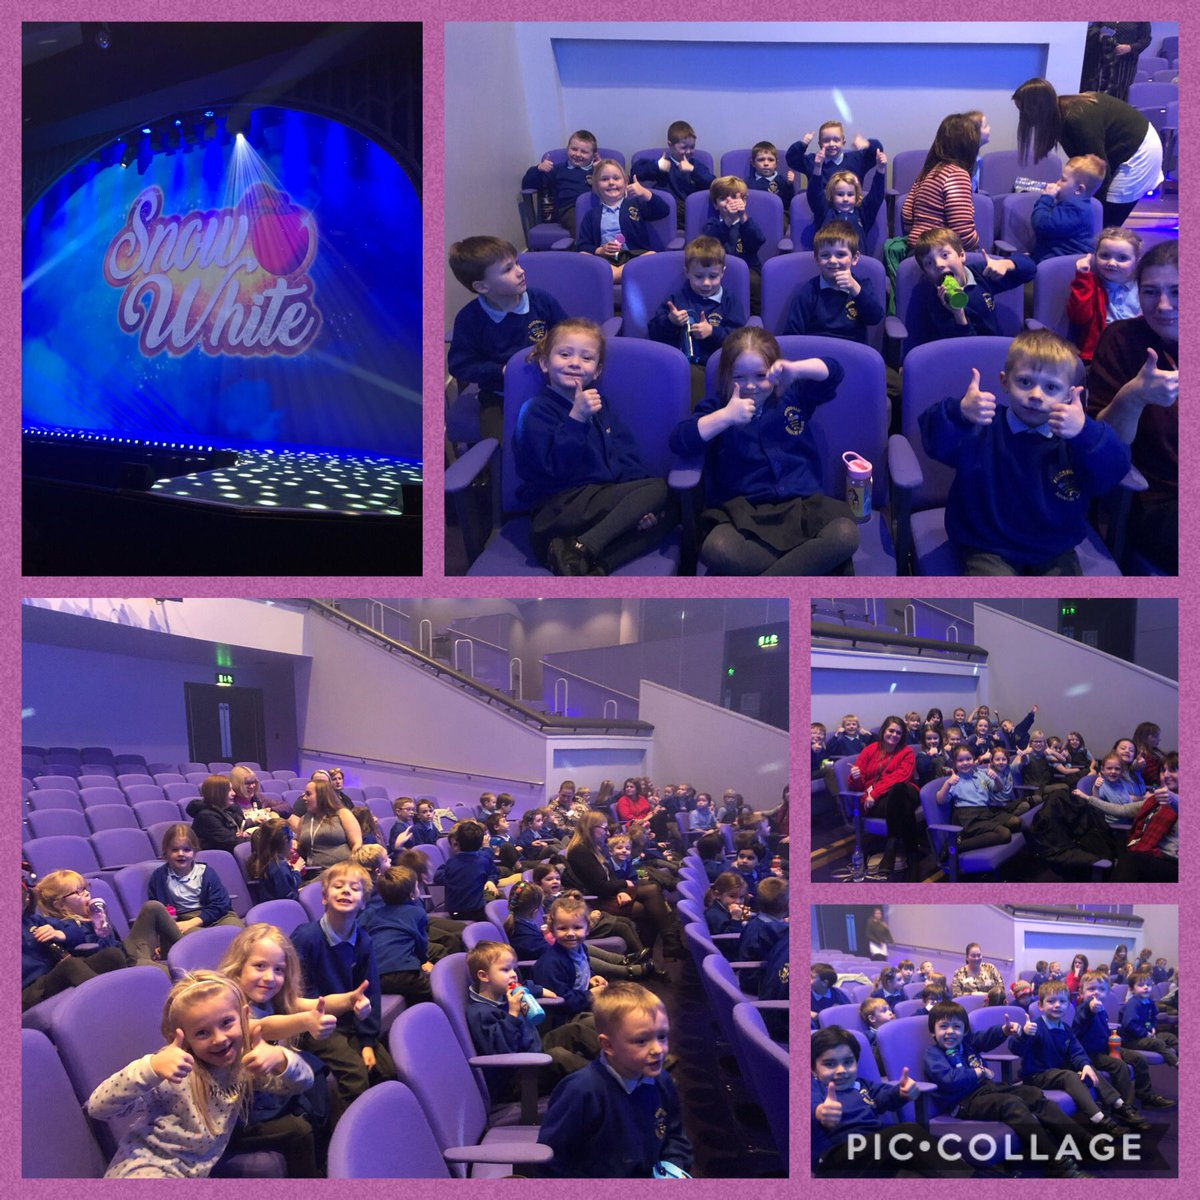 We our all panto ready @TheBrindley . All very excited indeed. We are right the front as well @mattdallen82 pic.twitter.com/LtMjIHIT8v